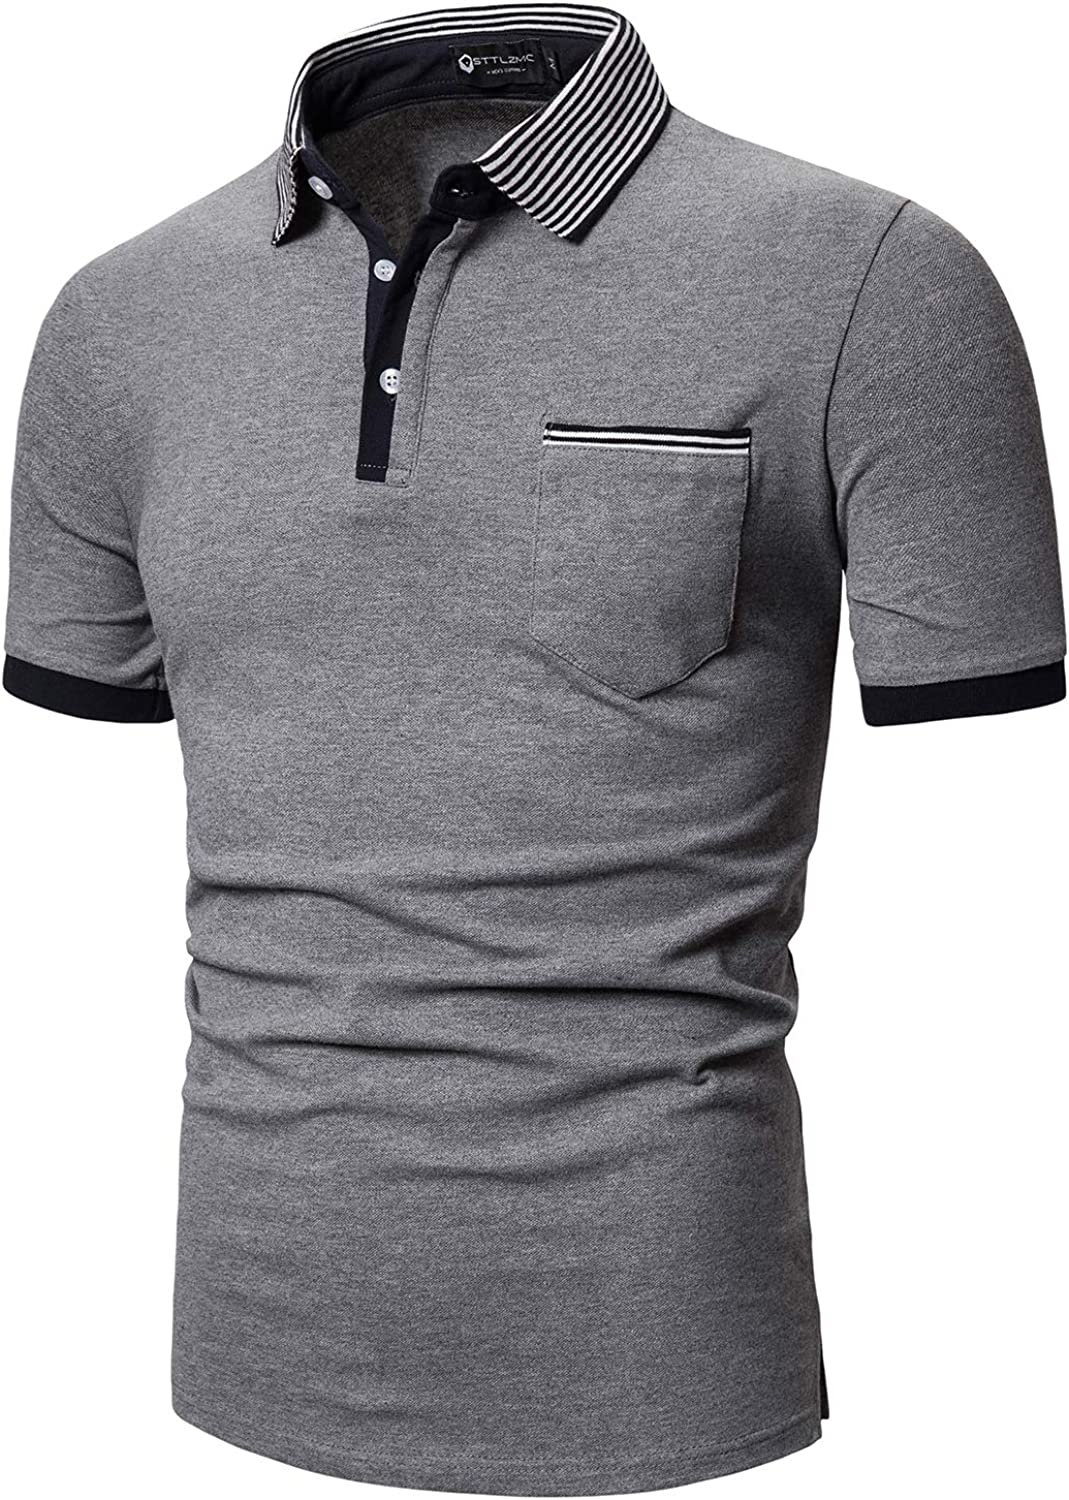 STTLZMC Casual Polo Homme Manche Courtes T-Shirt Mince Slim Fit Col Rayures Tops